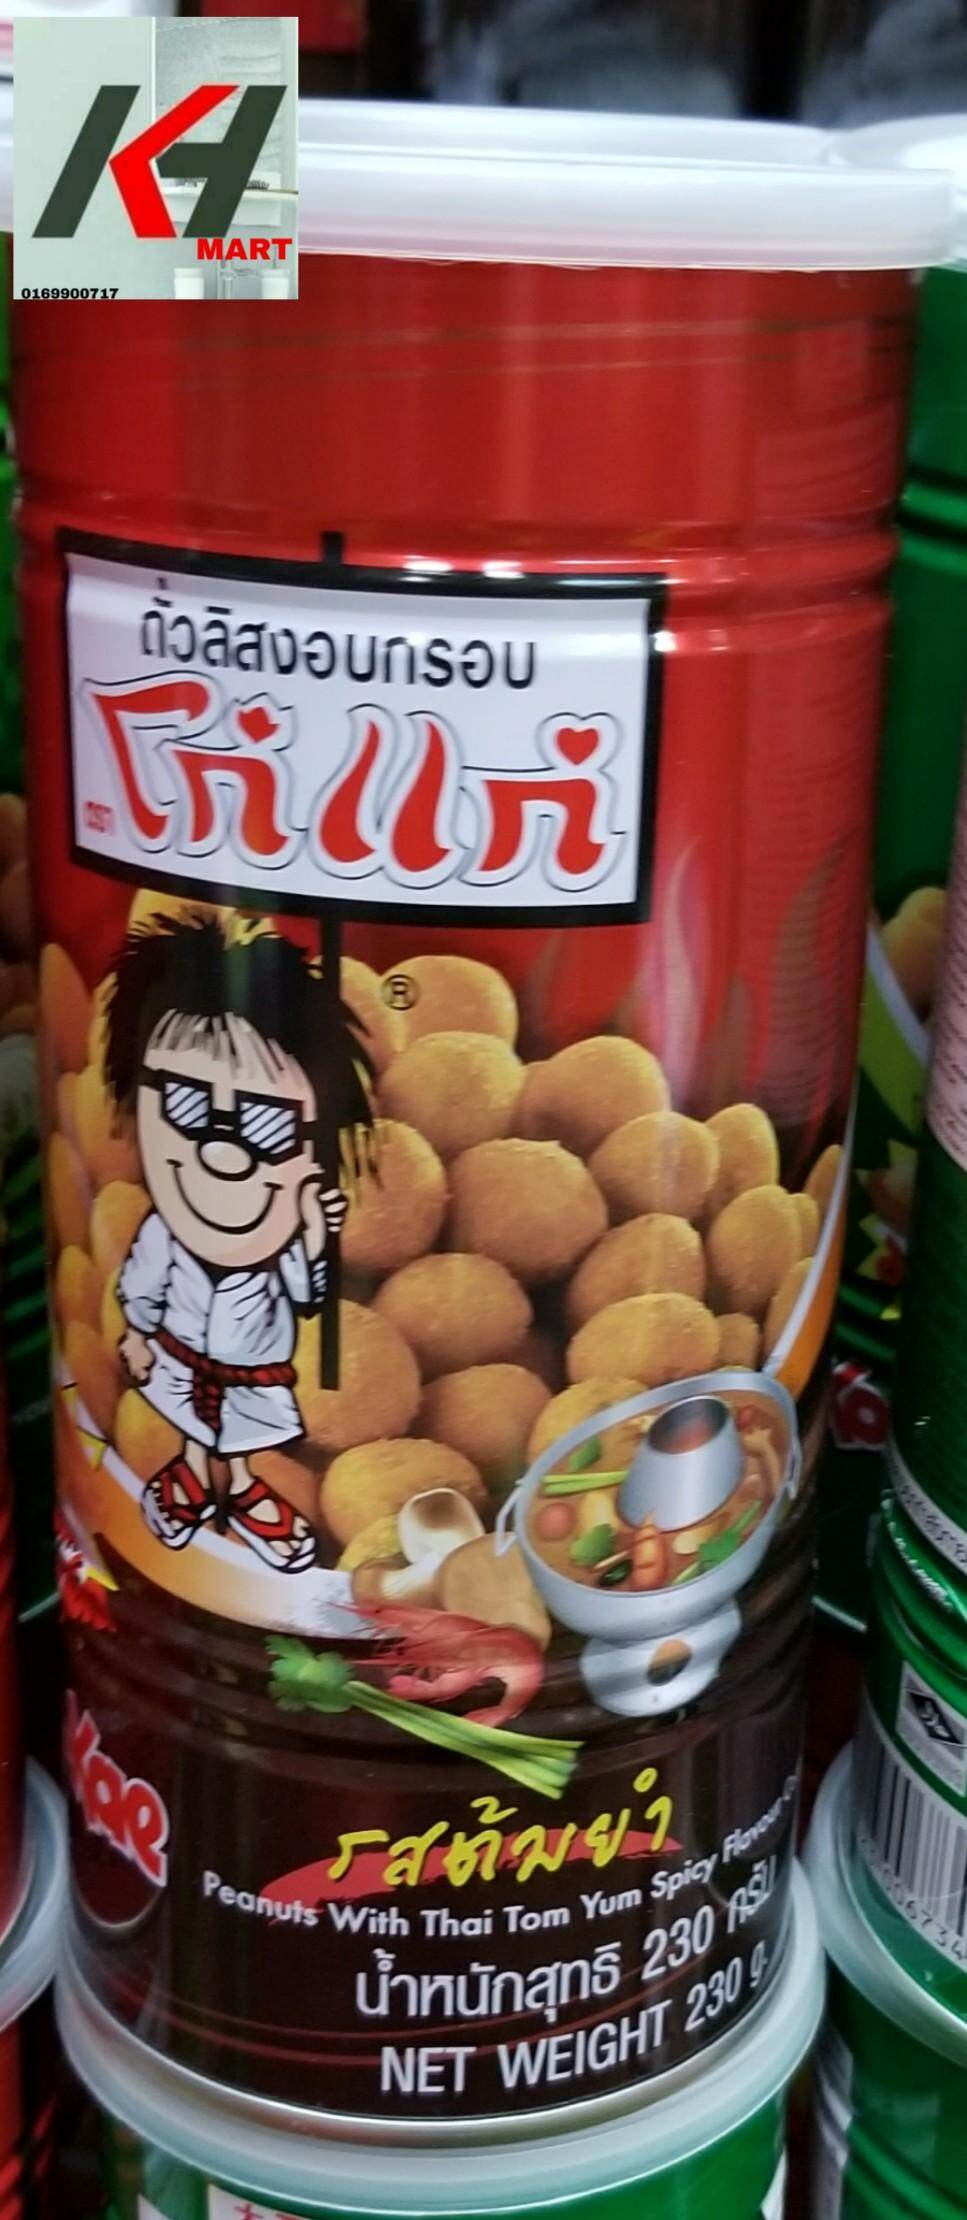 Koh Kae Peanuts THAI TOM YAM SPICY FLAVOUR Coated 230g READY STOCK